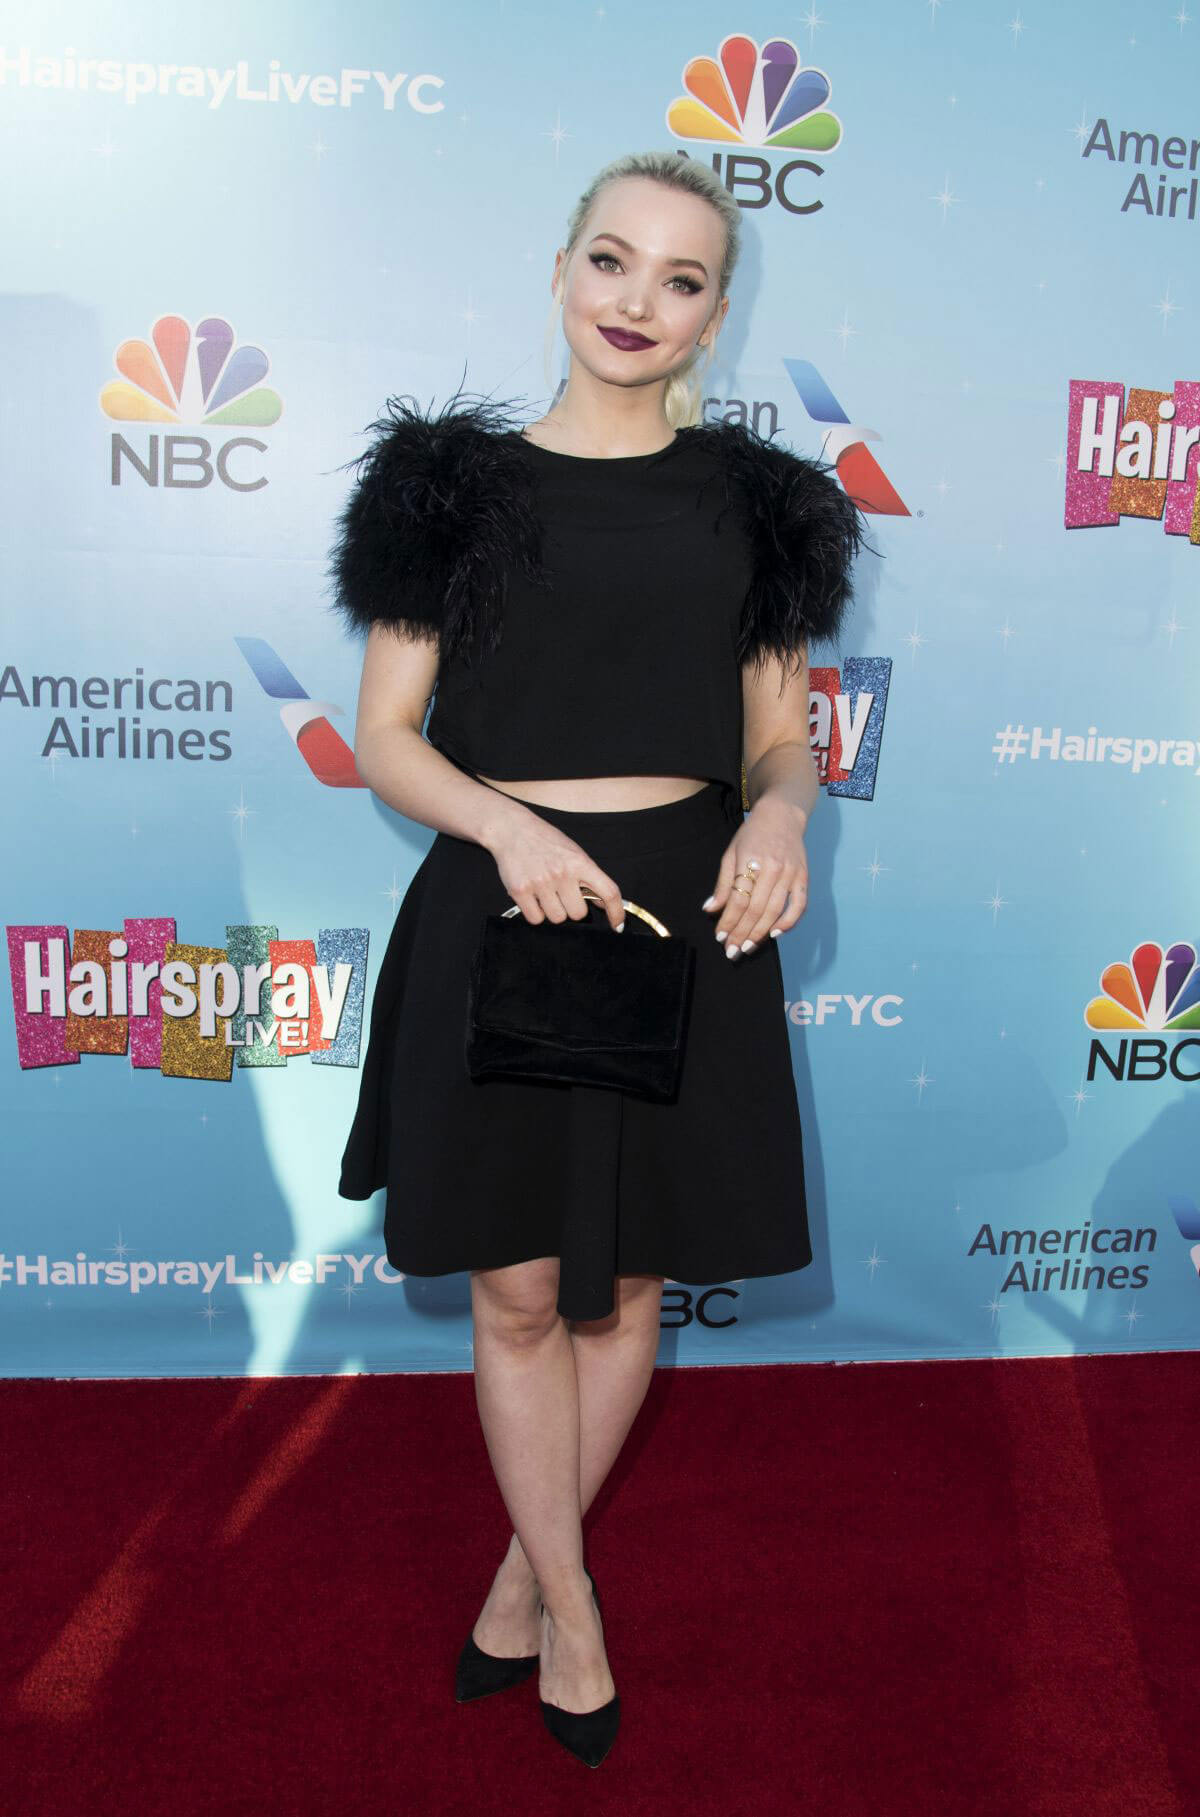 Dove Cameron at Hairspray Live! FYC Event in Hollywood